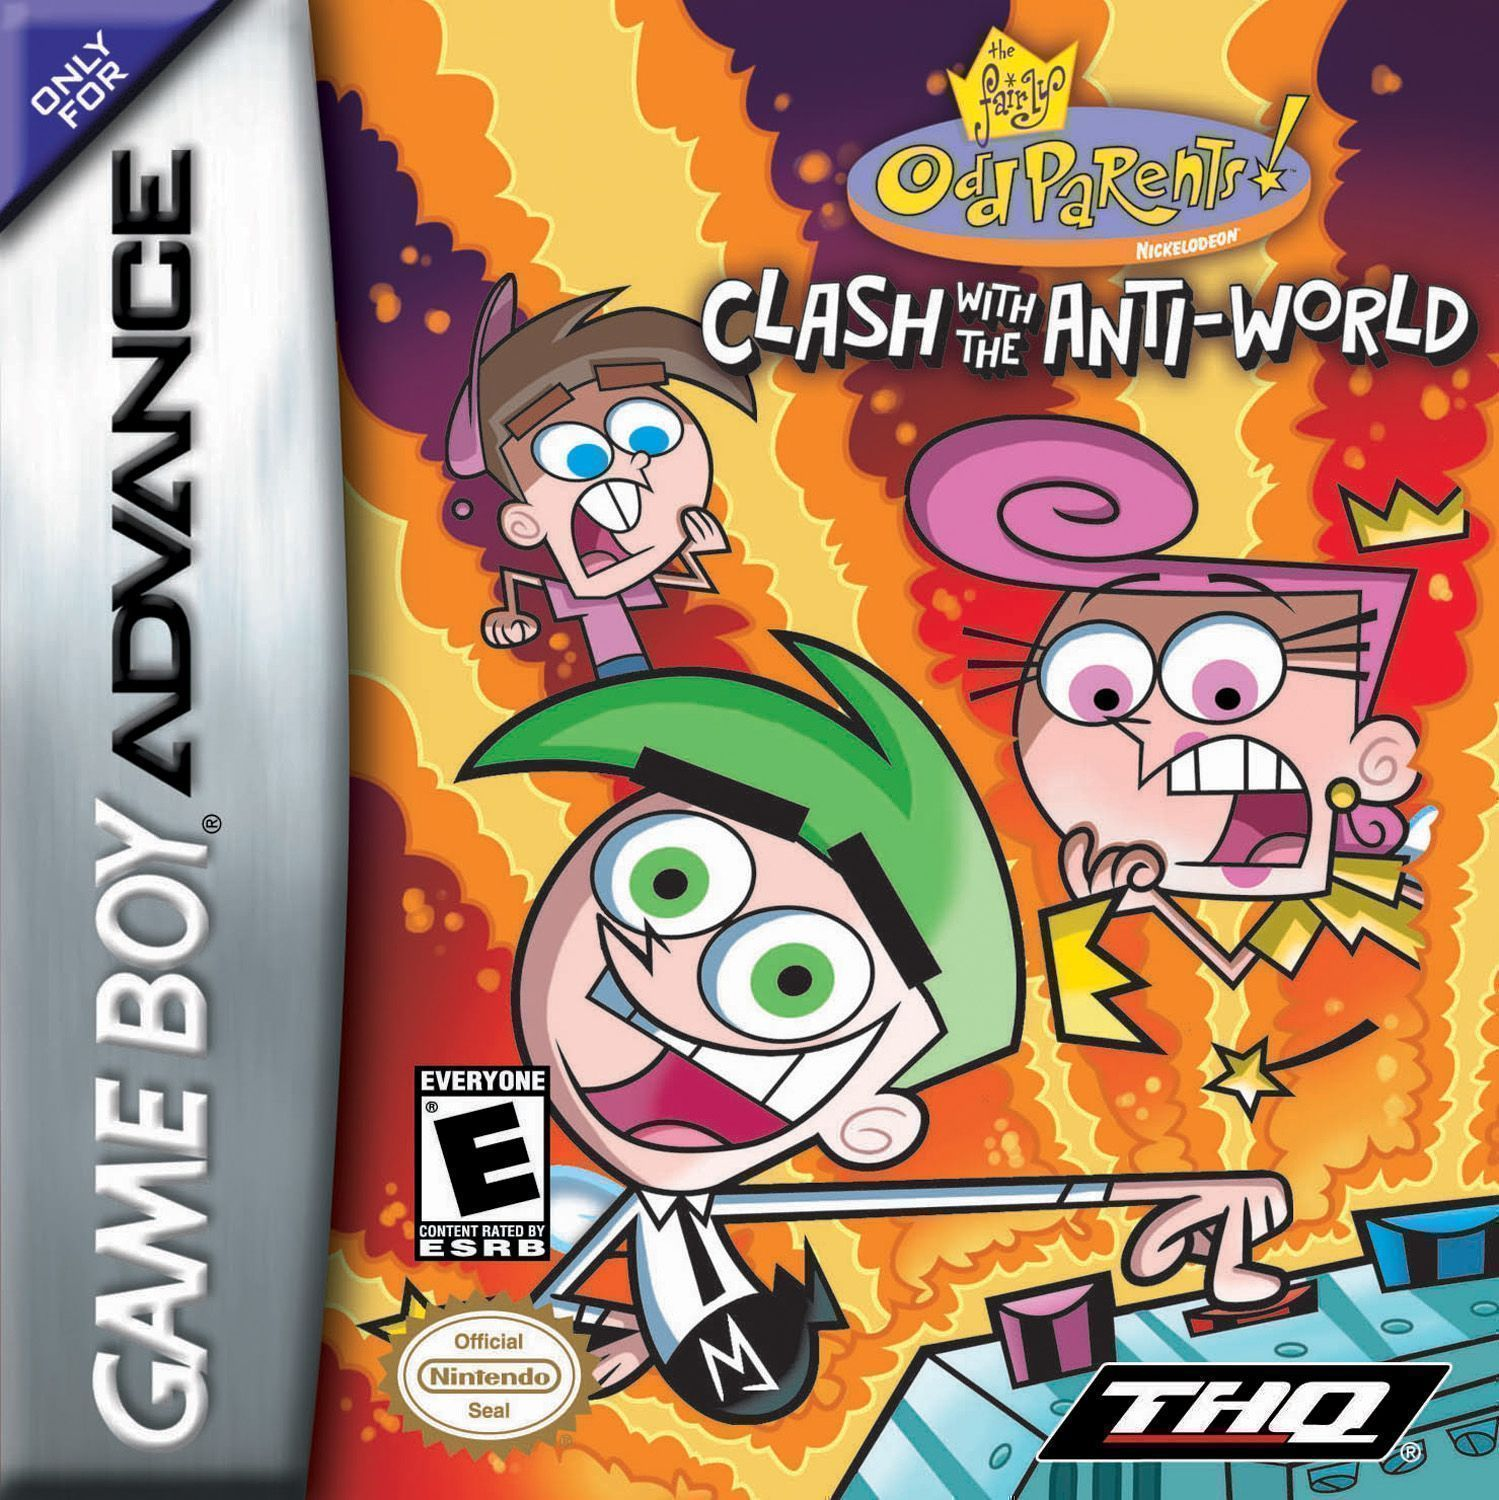 Fairly Odd Parents - Clash With The Anti-World